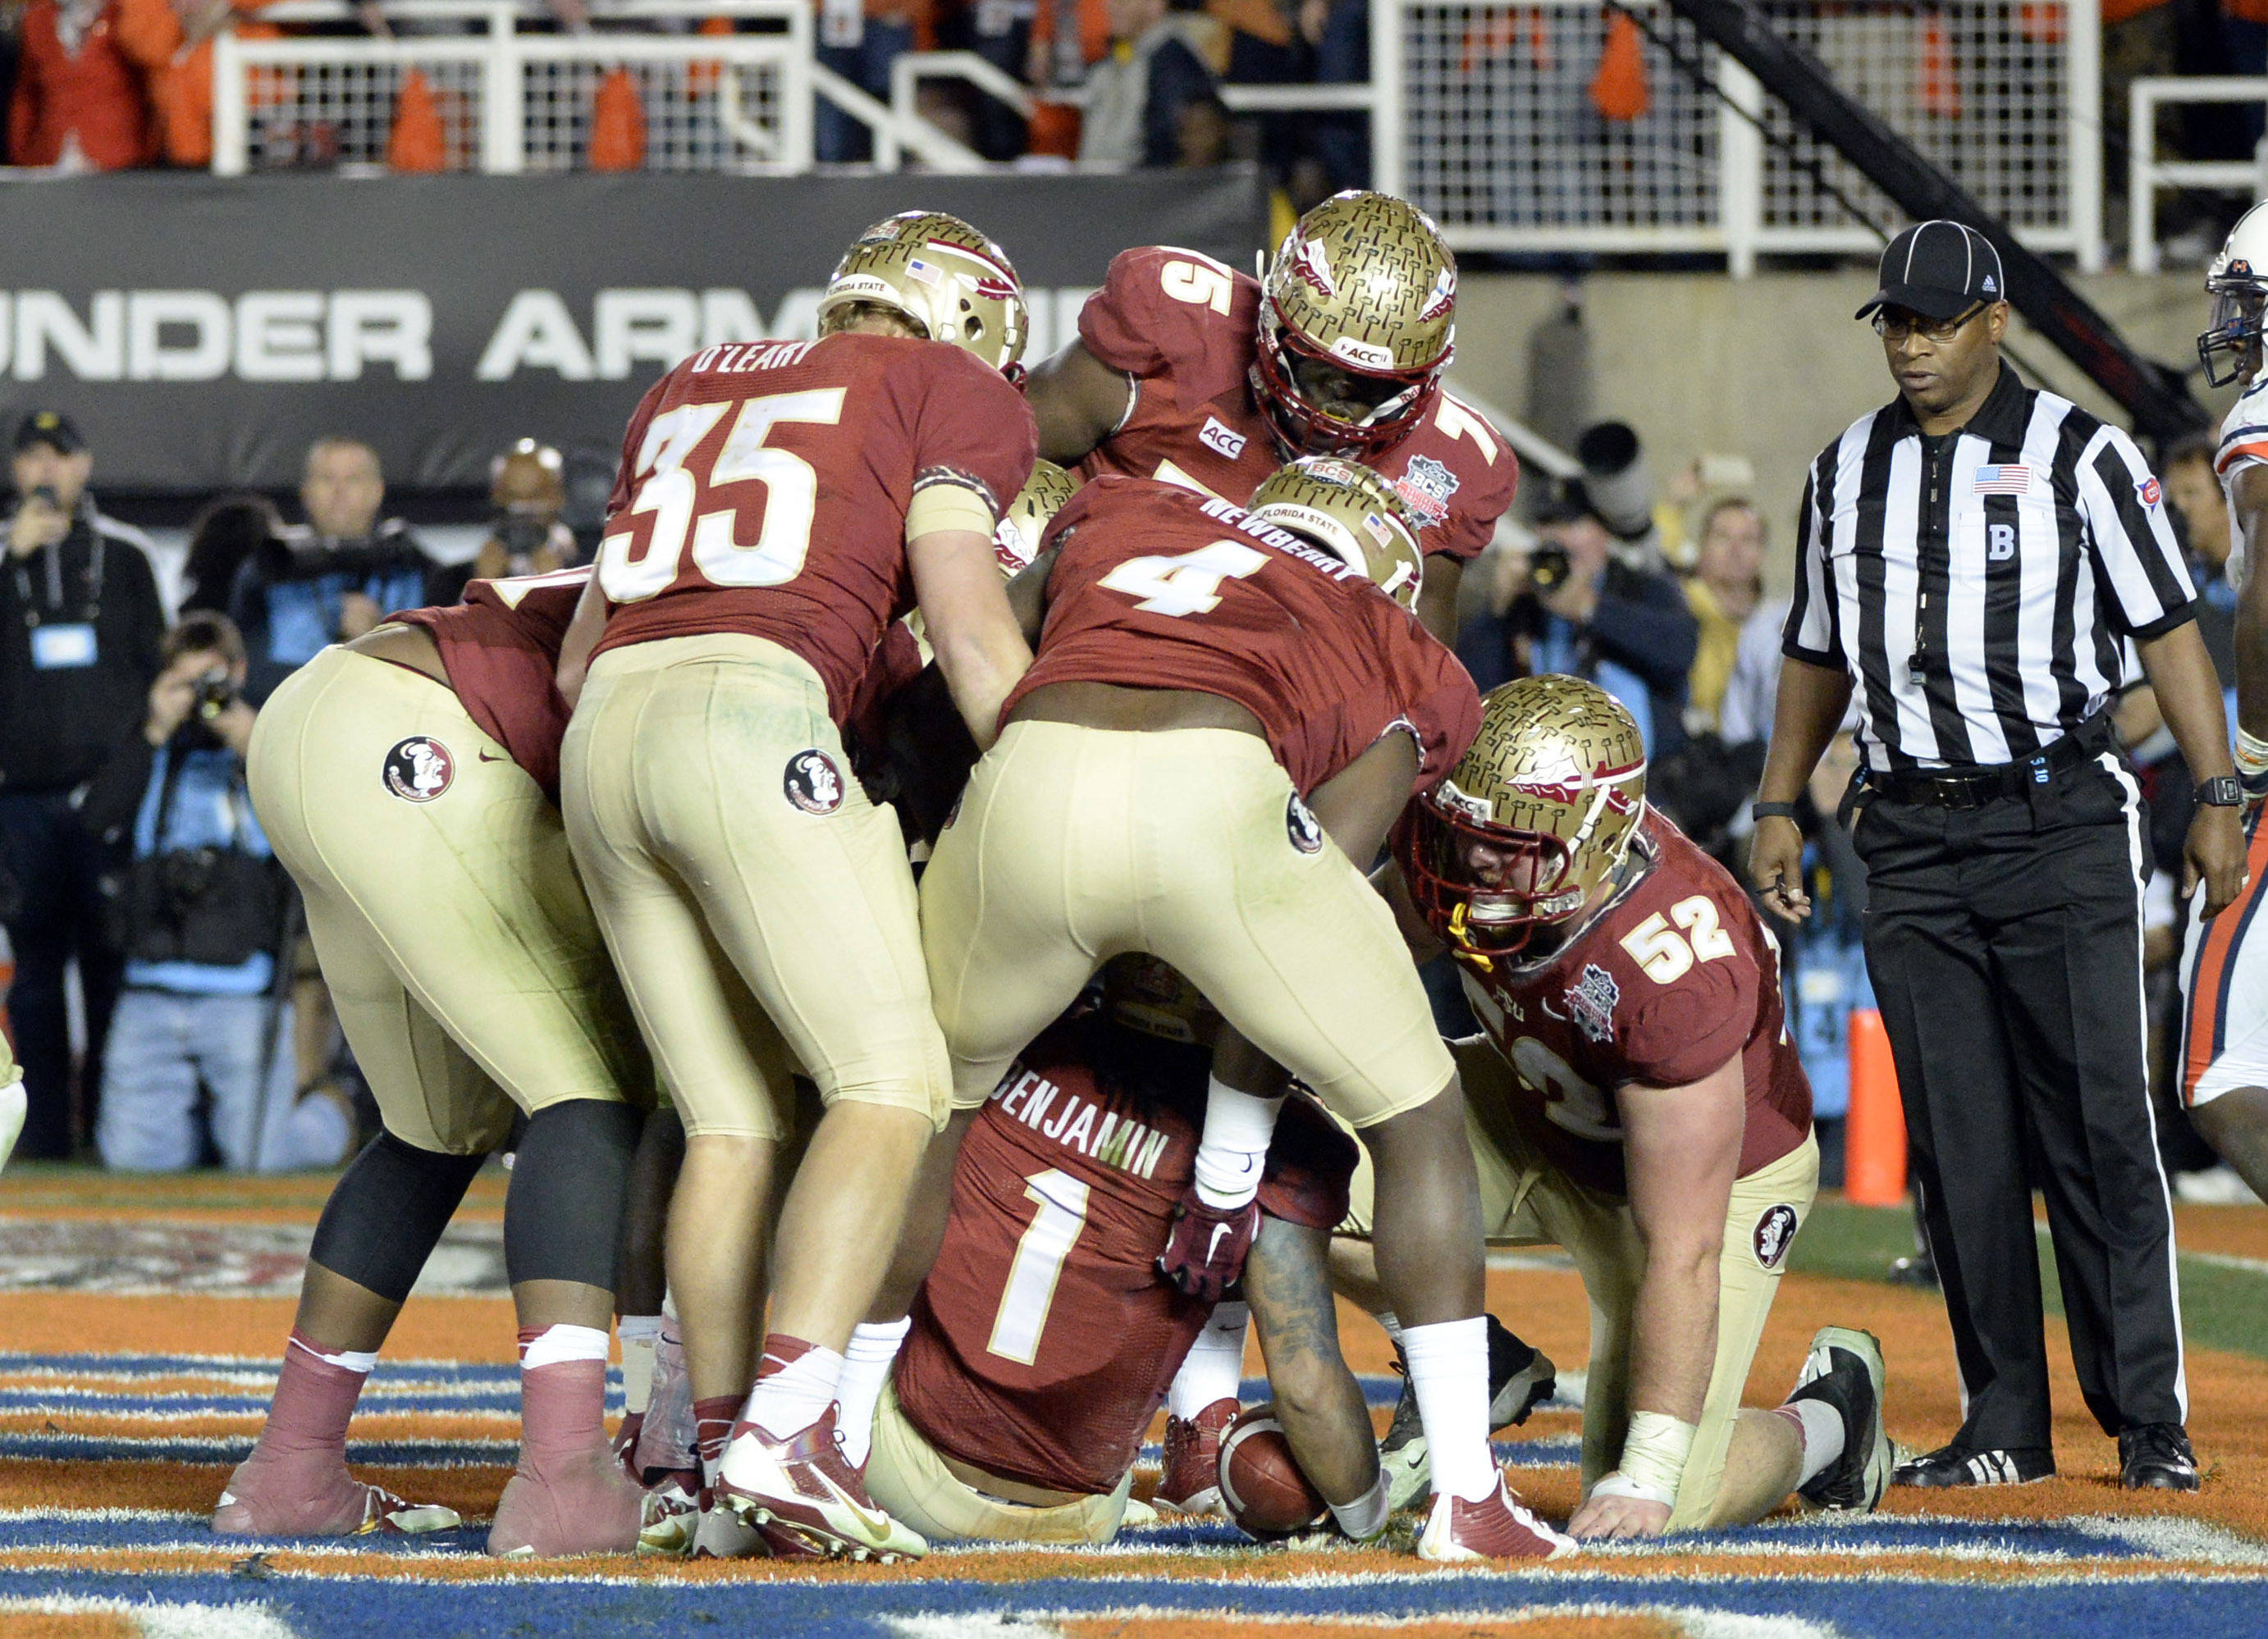 Jan 6, 2014; Pasadena, CA, USA; Florida State Seminoles tight end Nick O'Leary (35) and tight end Giorgio Newberry (4) and offensive linesman Bryan Stork (52) celebrate after wide receiver Kelvin Benjamin (1) caught a pass for a touchdown against the Auburn Tigers and during the second half of the 2014 BCS National Championship game at the Rose Bowl.  Mandatory Credit: Richard Mackson-USA TODAY Sports